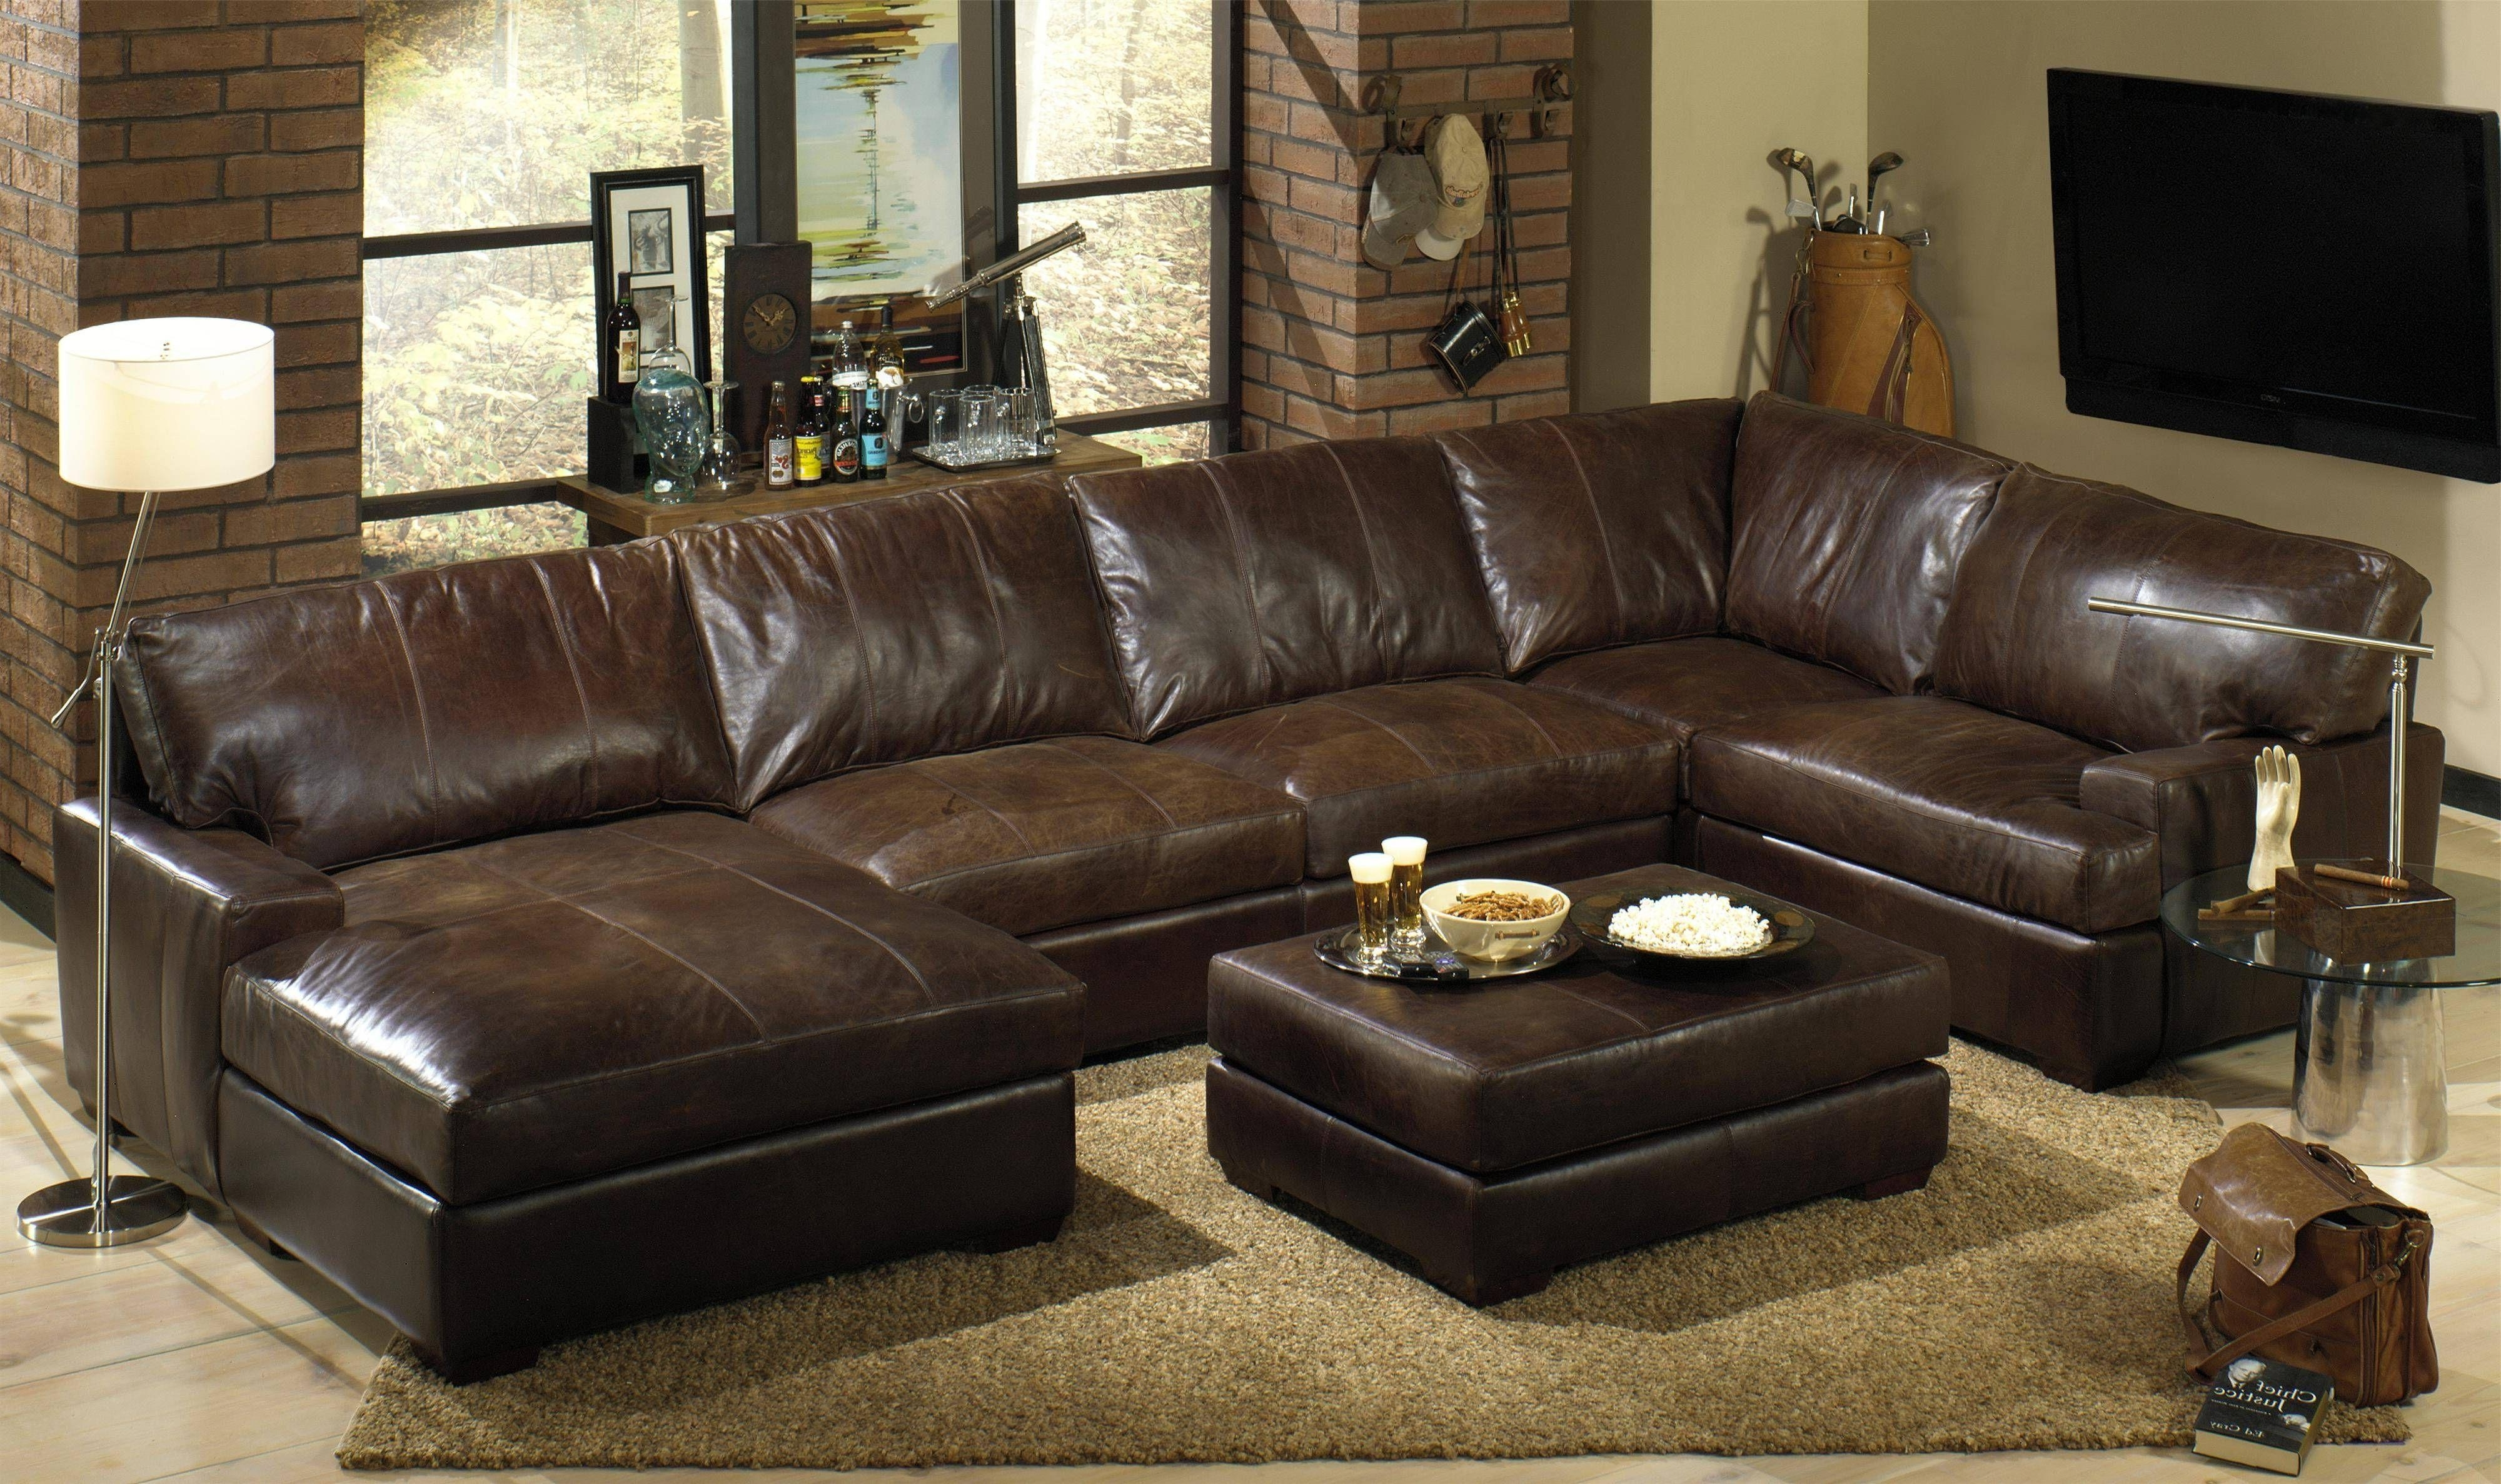 Furniture : Loveseat Hide A Bed Elegant Cool Sectional Sofa With Pertaining To Most Popular Sectional Sofas With Oversized Ottoman (View 7 of 20)